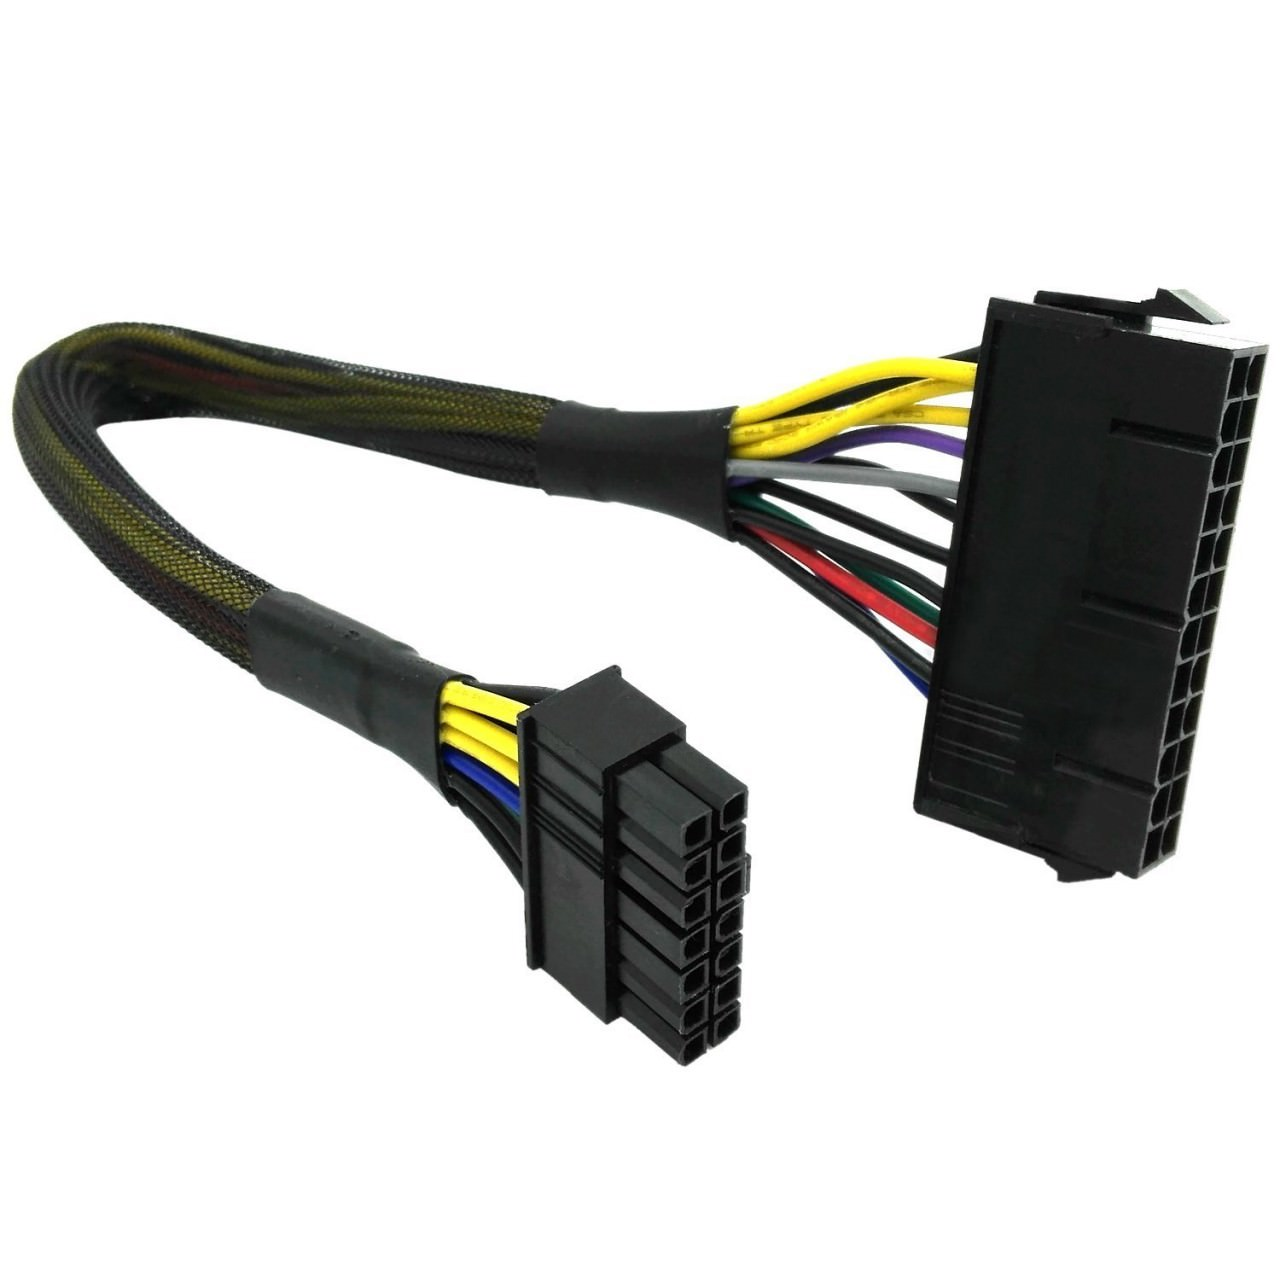 IBM_Lenovo_PSU_Main_Power_20 Pin_to_14 Pin_Adapter_Cable_%2830cm%29__54580_zoom ibm lenovo psu main power 24 pin to 14 pin adapter cable (30cm 20 pin main wire harness at nearapp.co